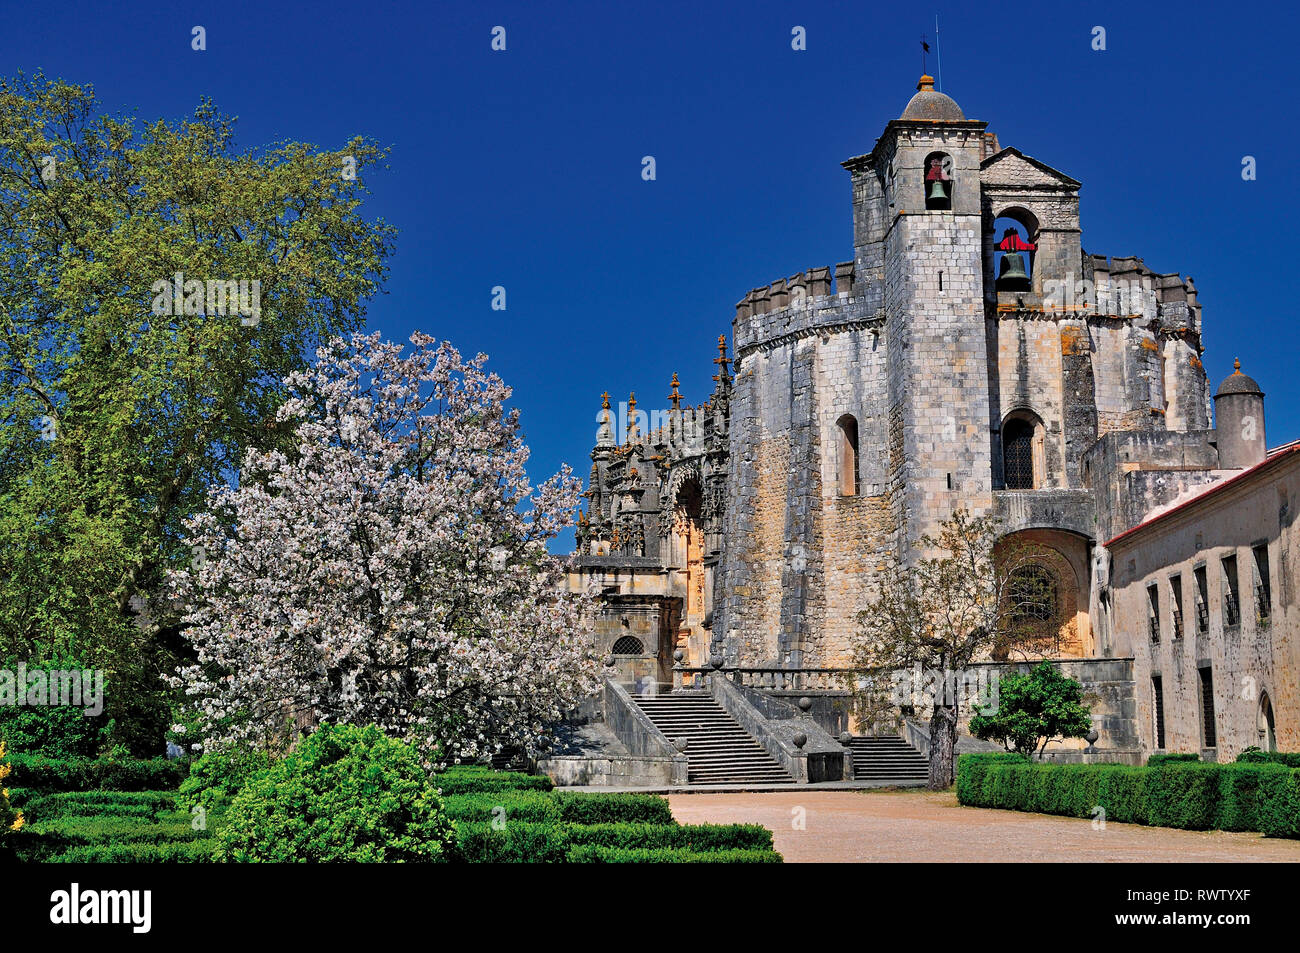 Outdoor view of middle-aged convent and templar castle in Tomar - Stock Image